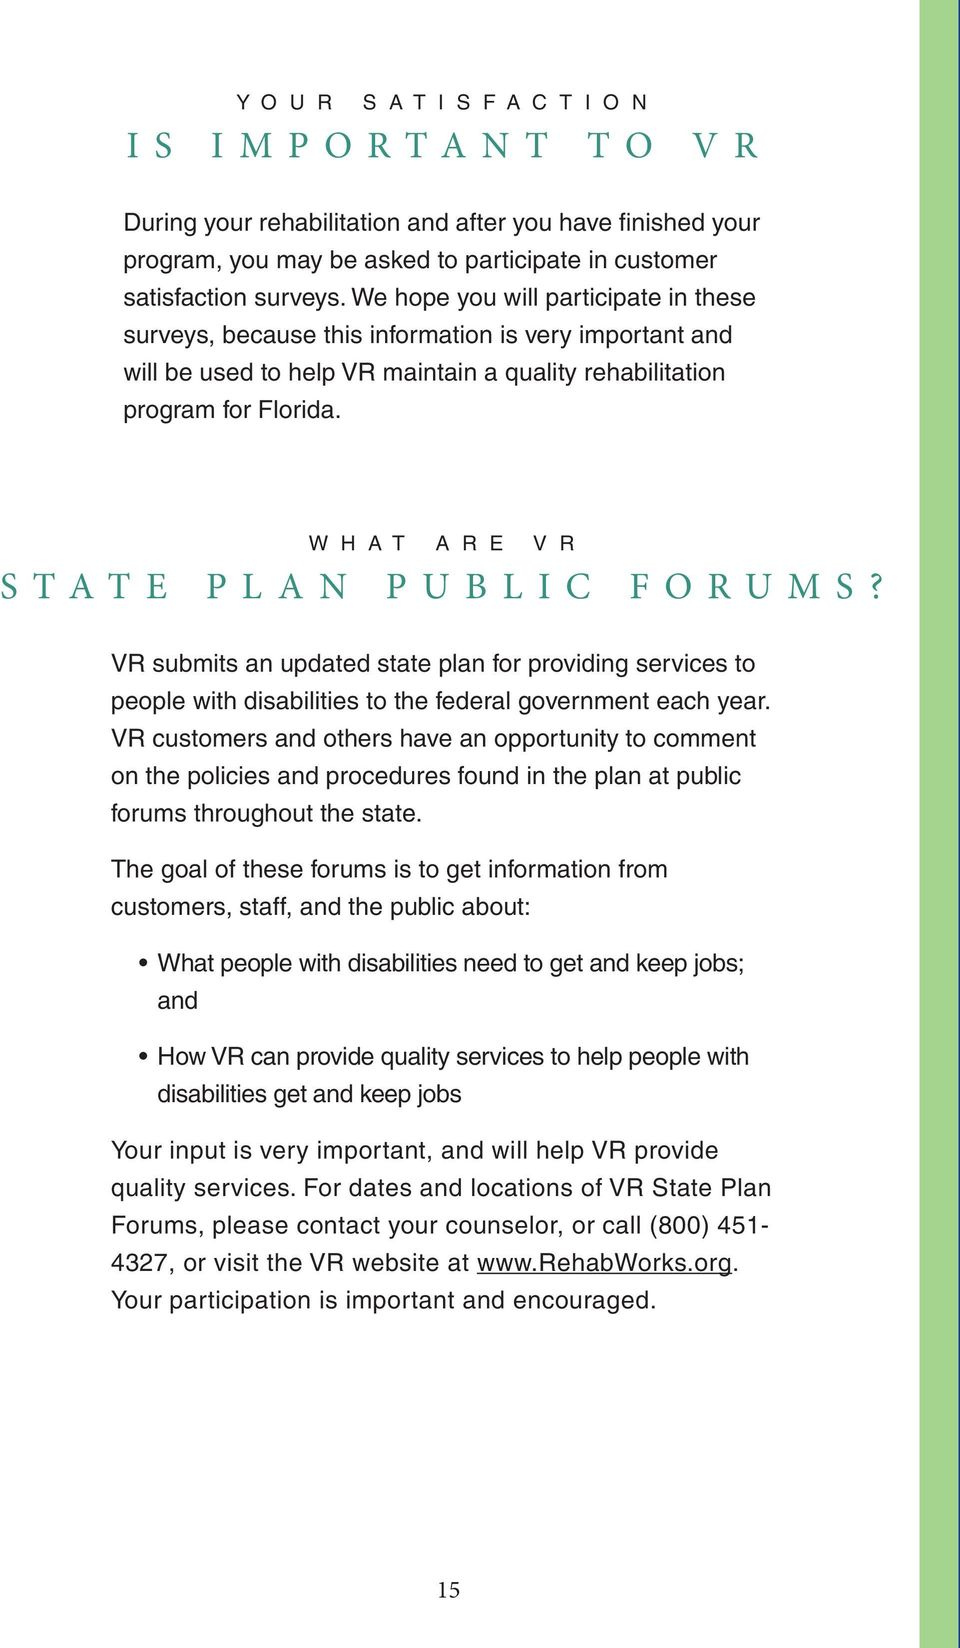 W H A T A R E V R STATE PLAN PUBLIC FORUMS? VR submits an updated state plan for providing services to people with disabilities to the federal government each year.